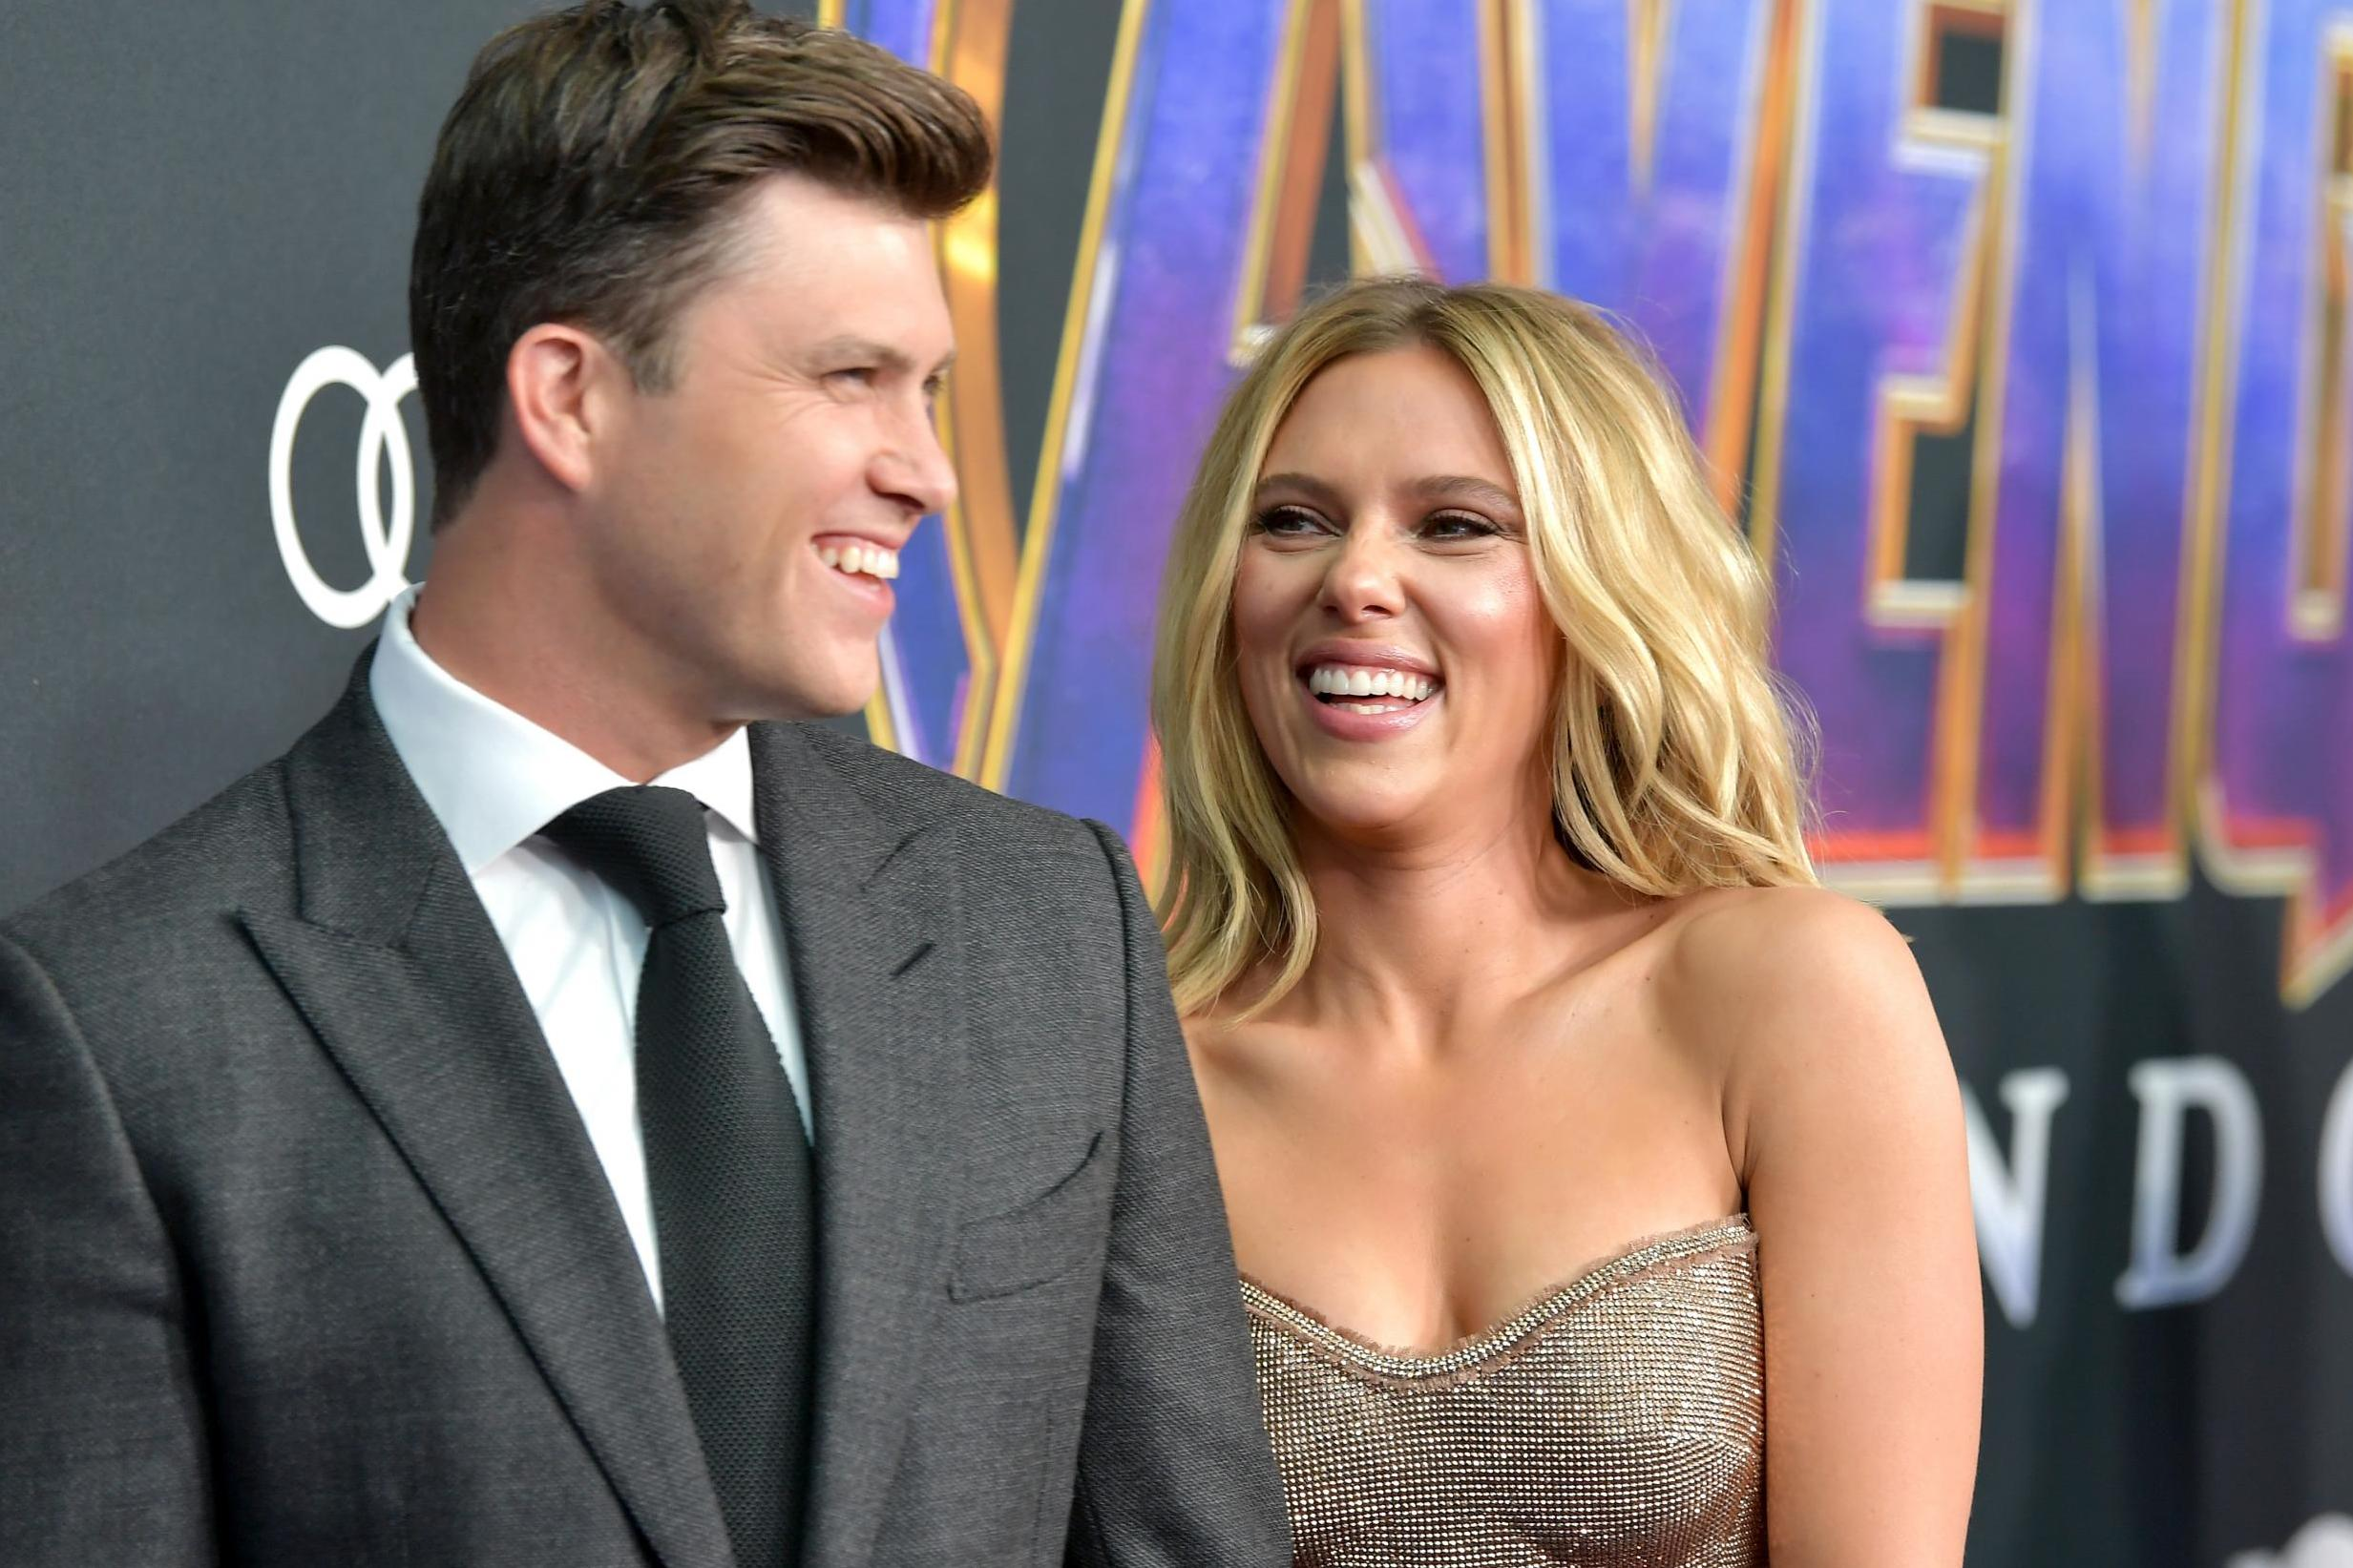 Scarlett Johansson Announces Engagement To Snl Host Colin Jost The Independent The Independent